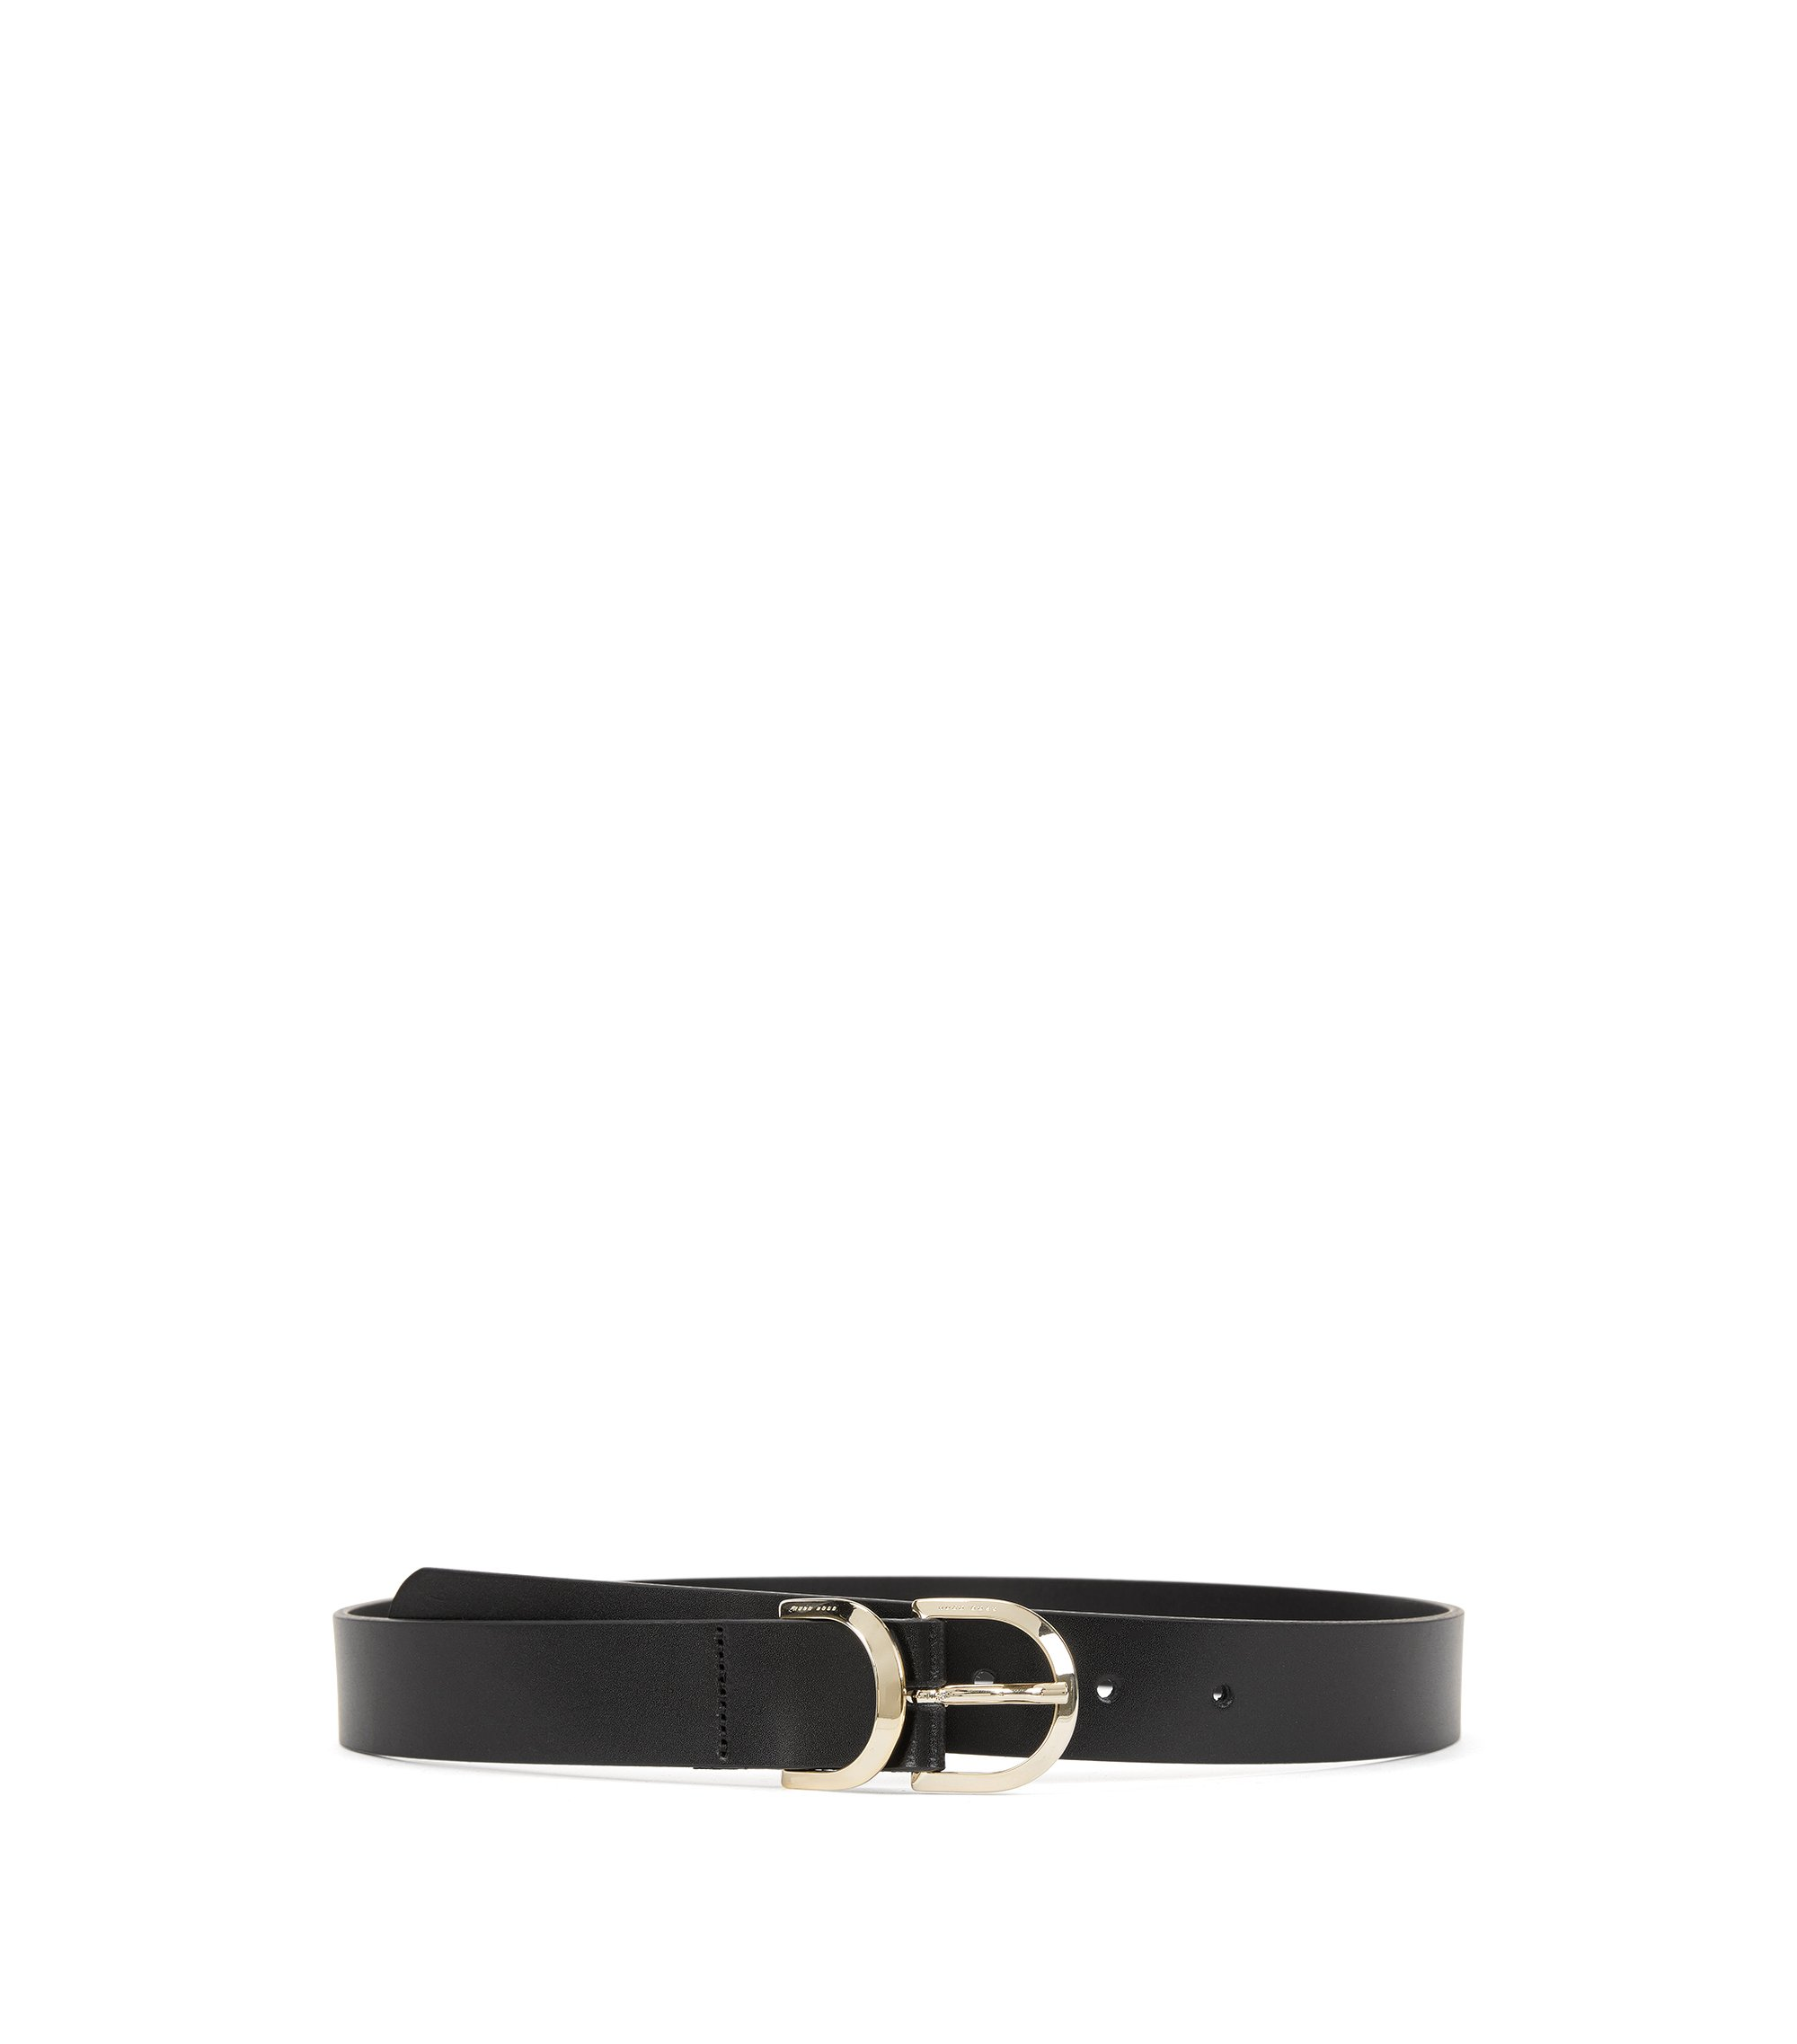 Leather belt with double-ring buckle, Black